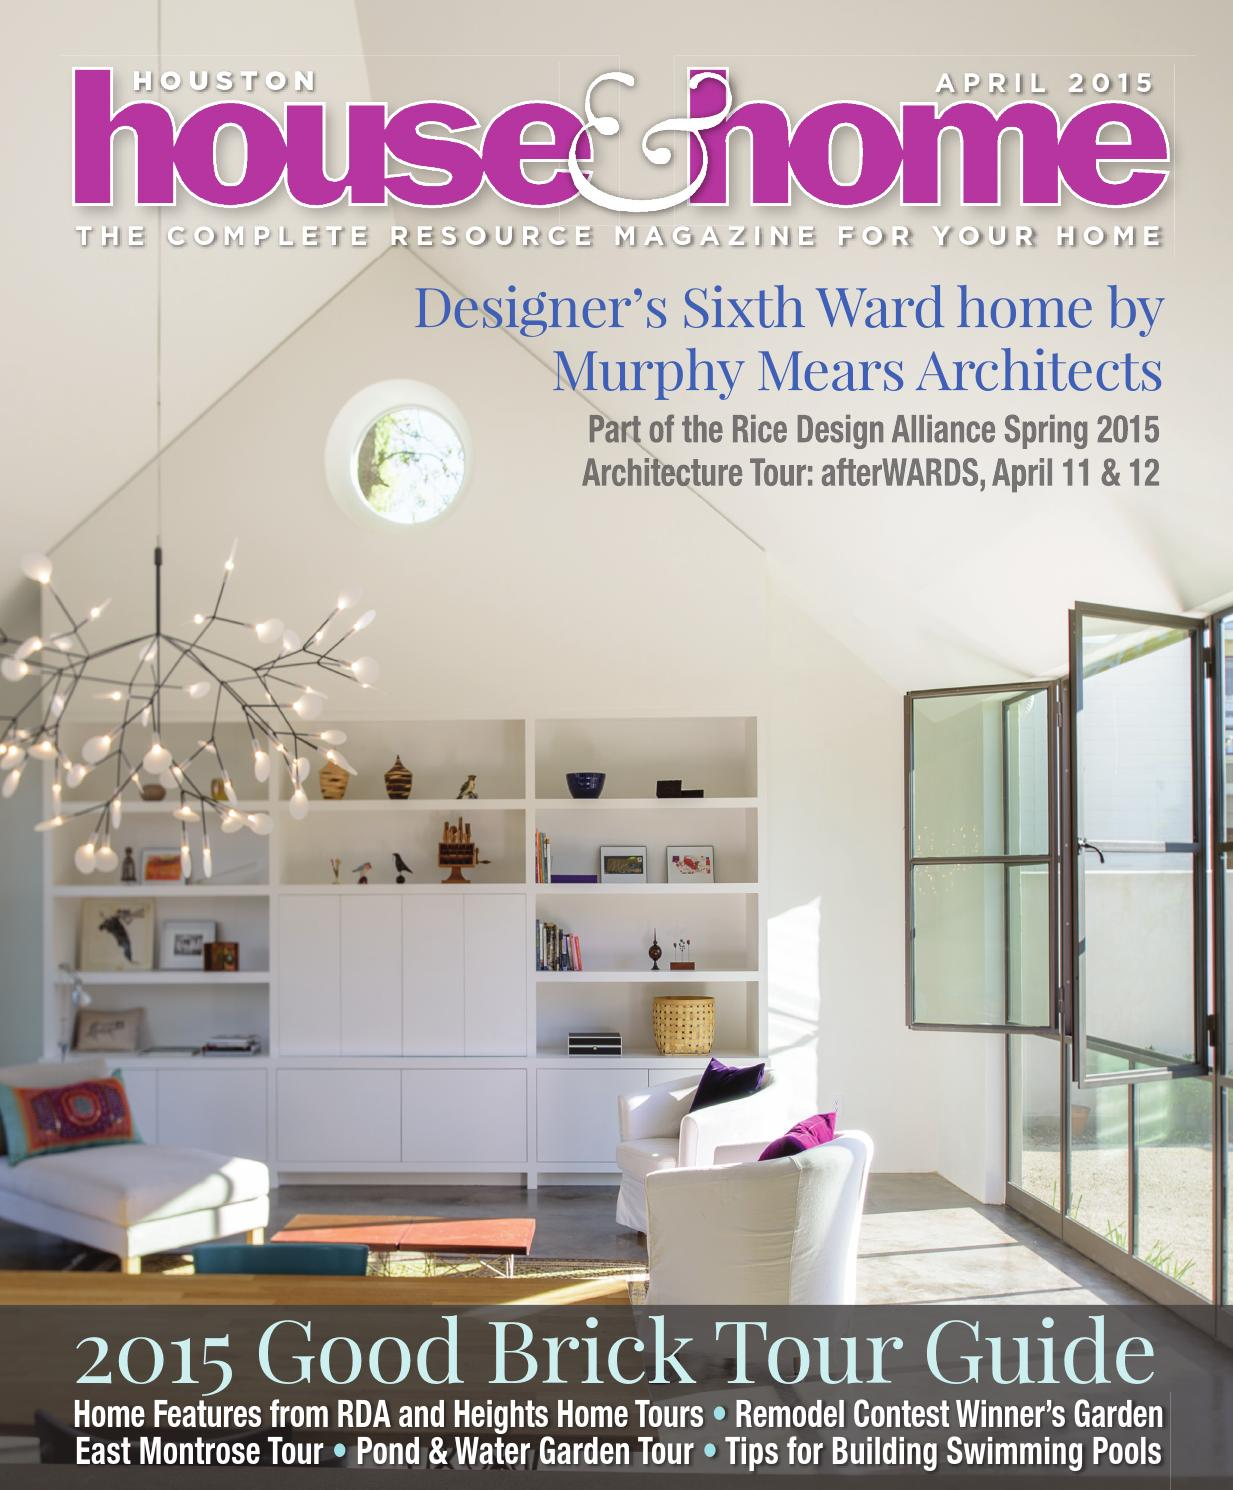 0415 houhousehome vir by houston house home magazine issuu. Interior Design Ideas. Home Design Ideas